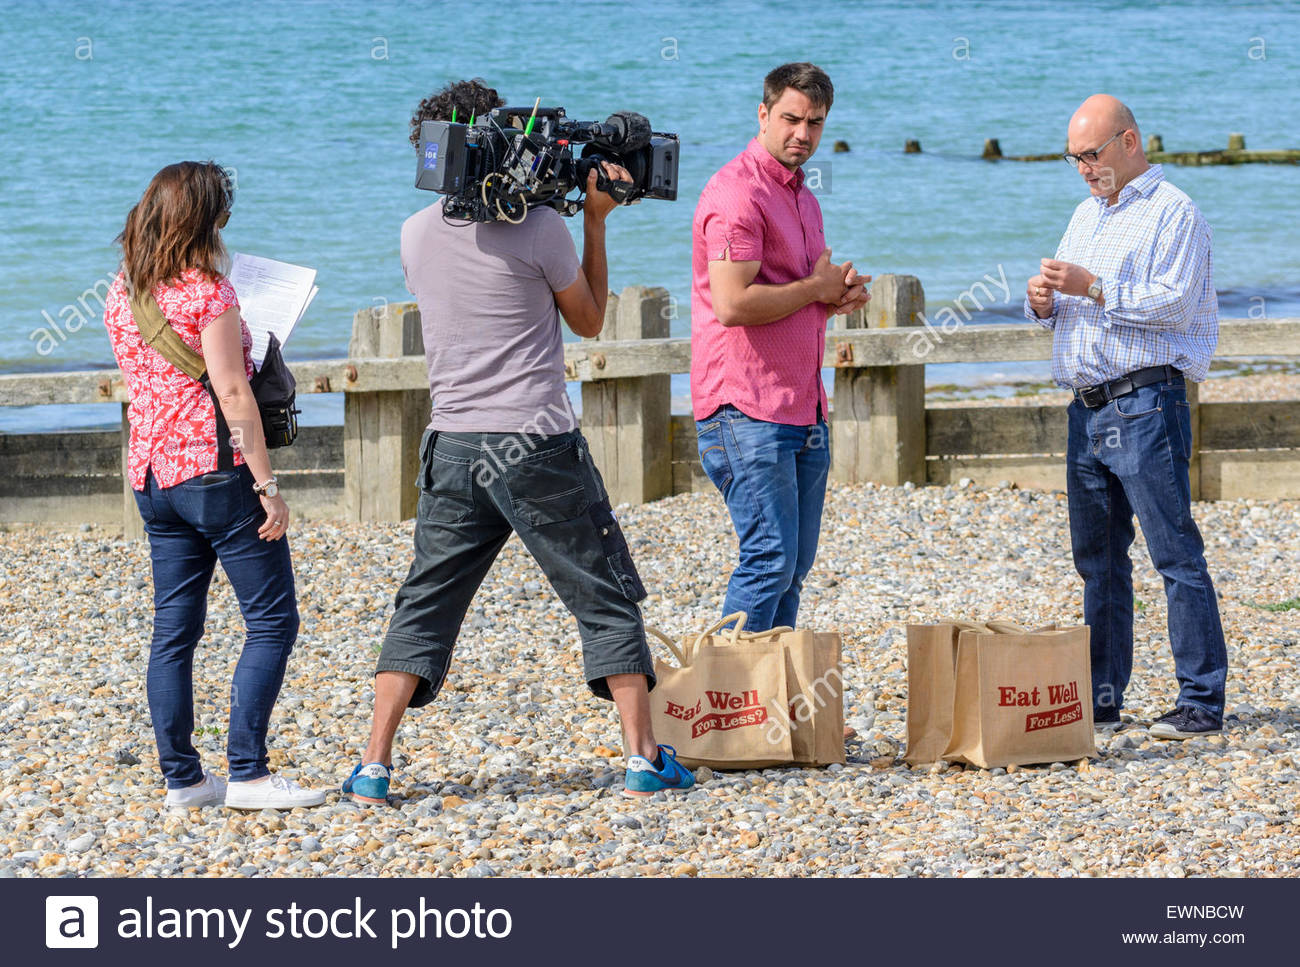 Gregg Wallace and Chris Bavin preparing to be filmed for the 'Eat Well for less?' TV show on a beach by - Stock Image